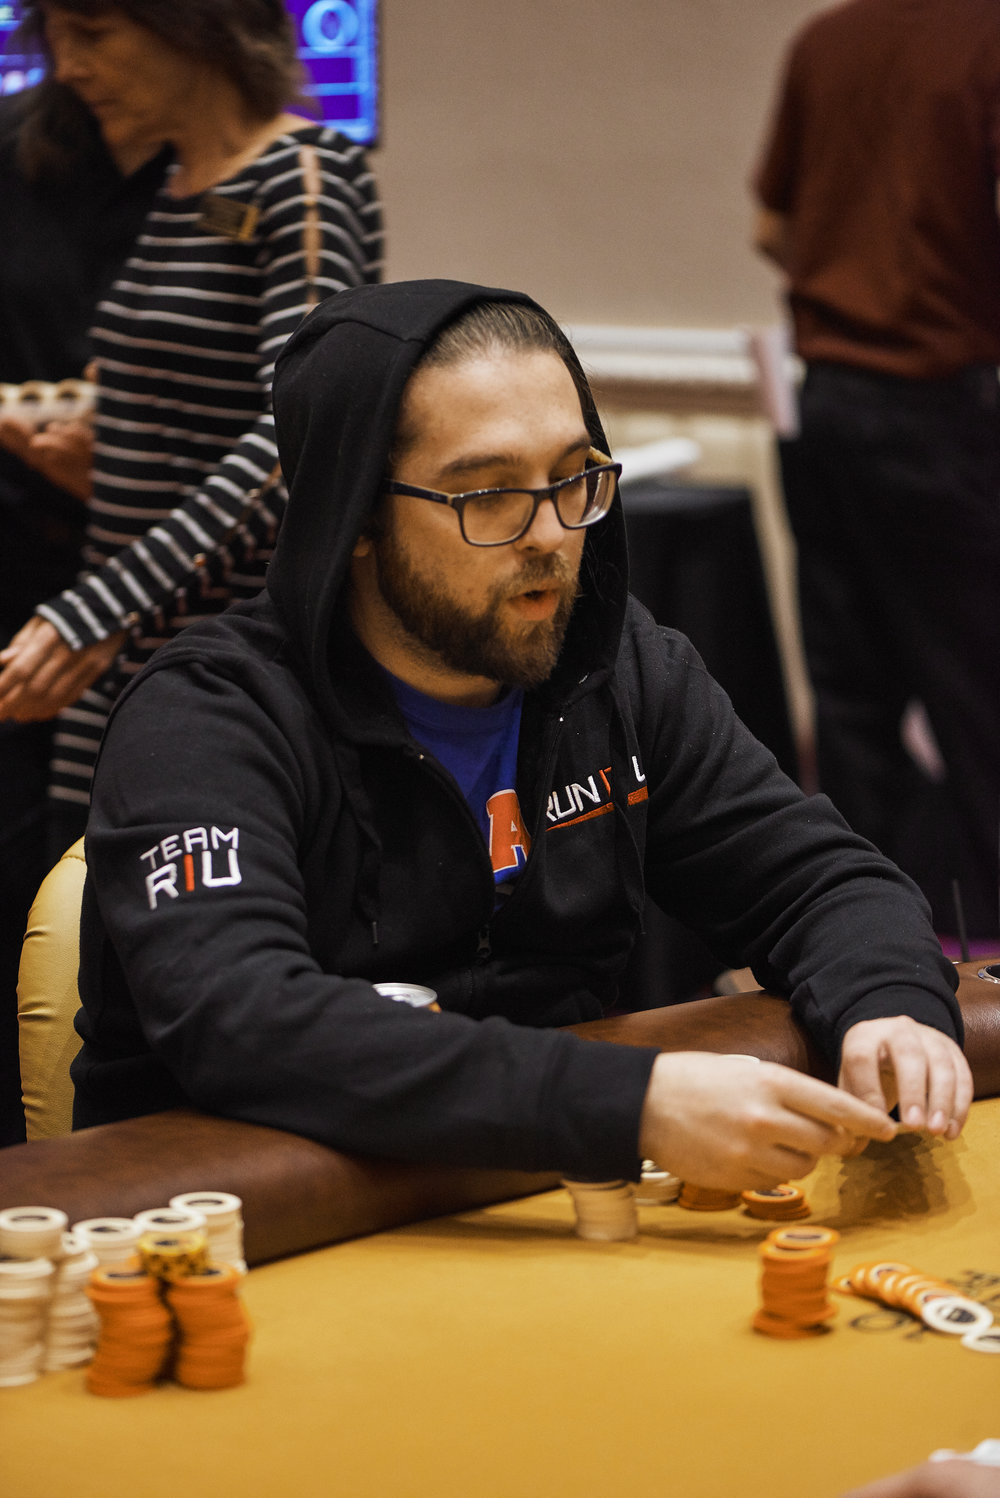 Max Brown eliminated in 11th place for $2,525